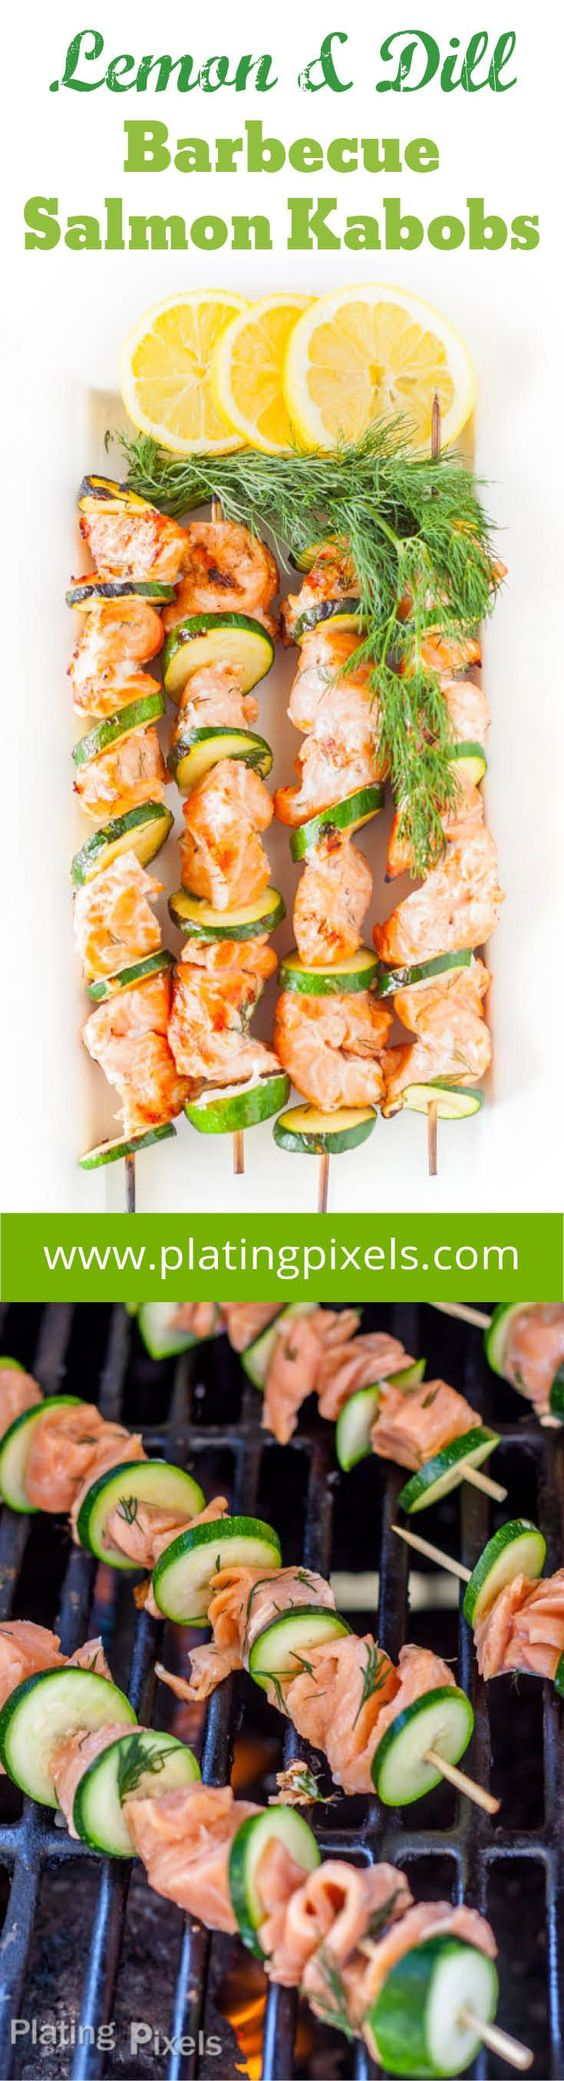 Lemon and Dill Barbecue Salmon Kabobs by Plating Pixels - Vinegar, lemon juice and zest add a nice zing to salmon. - www.platingpixels.com